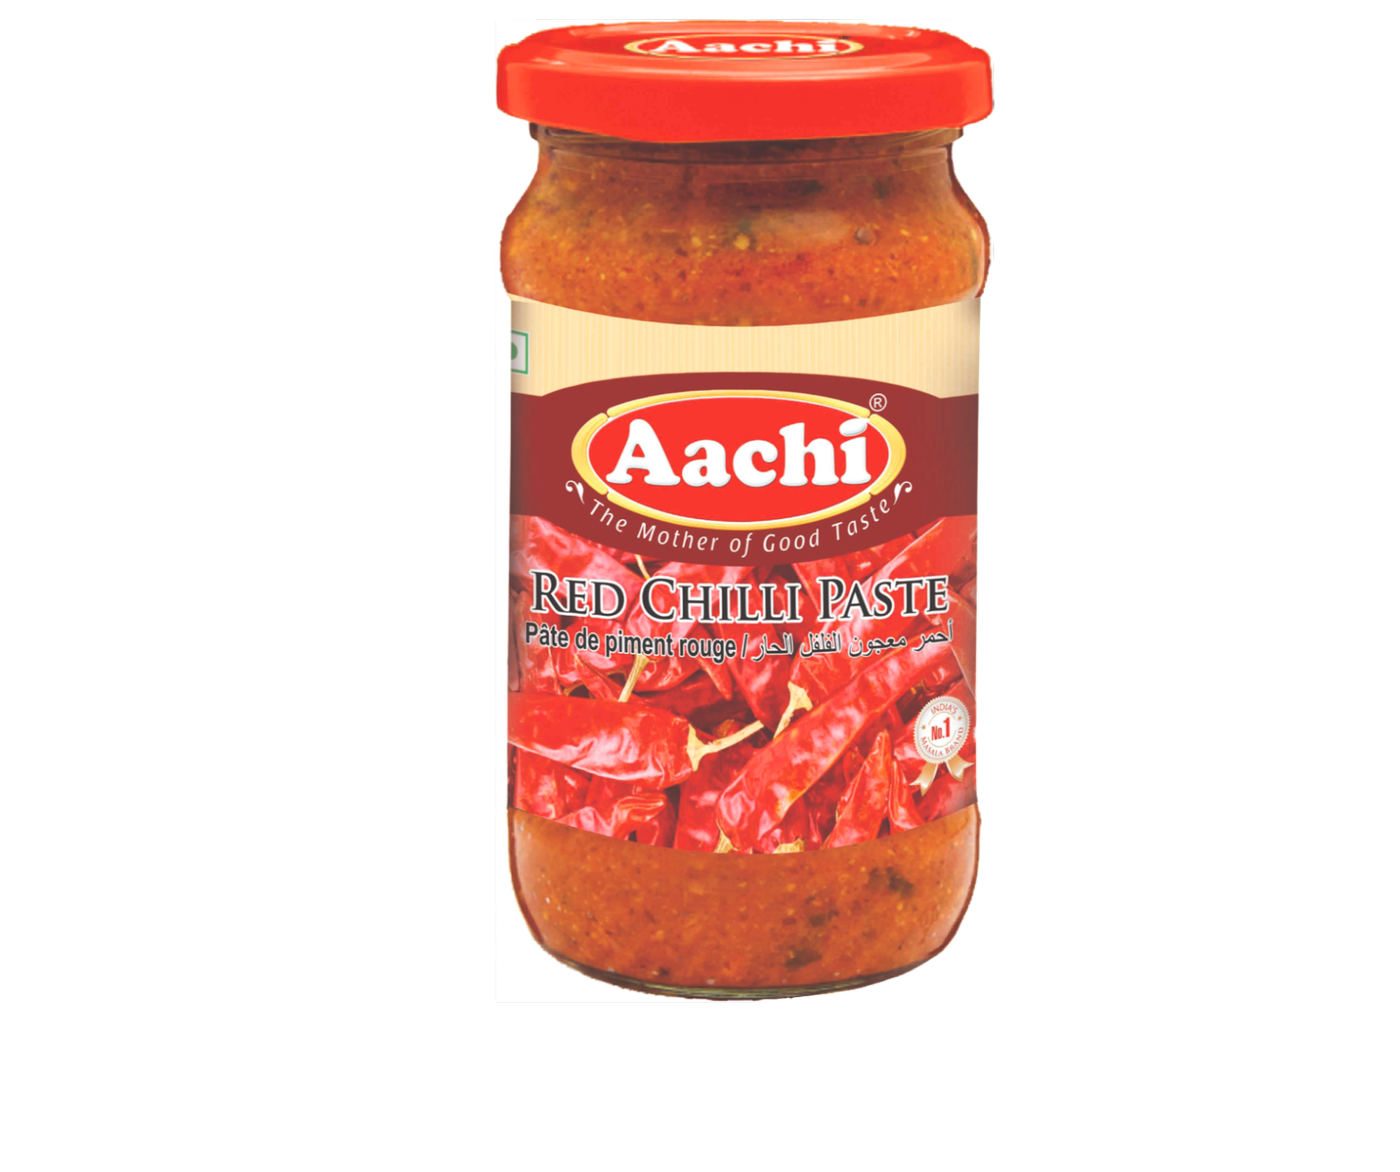 Aachi Red Chilli Paste